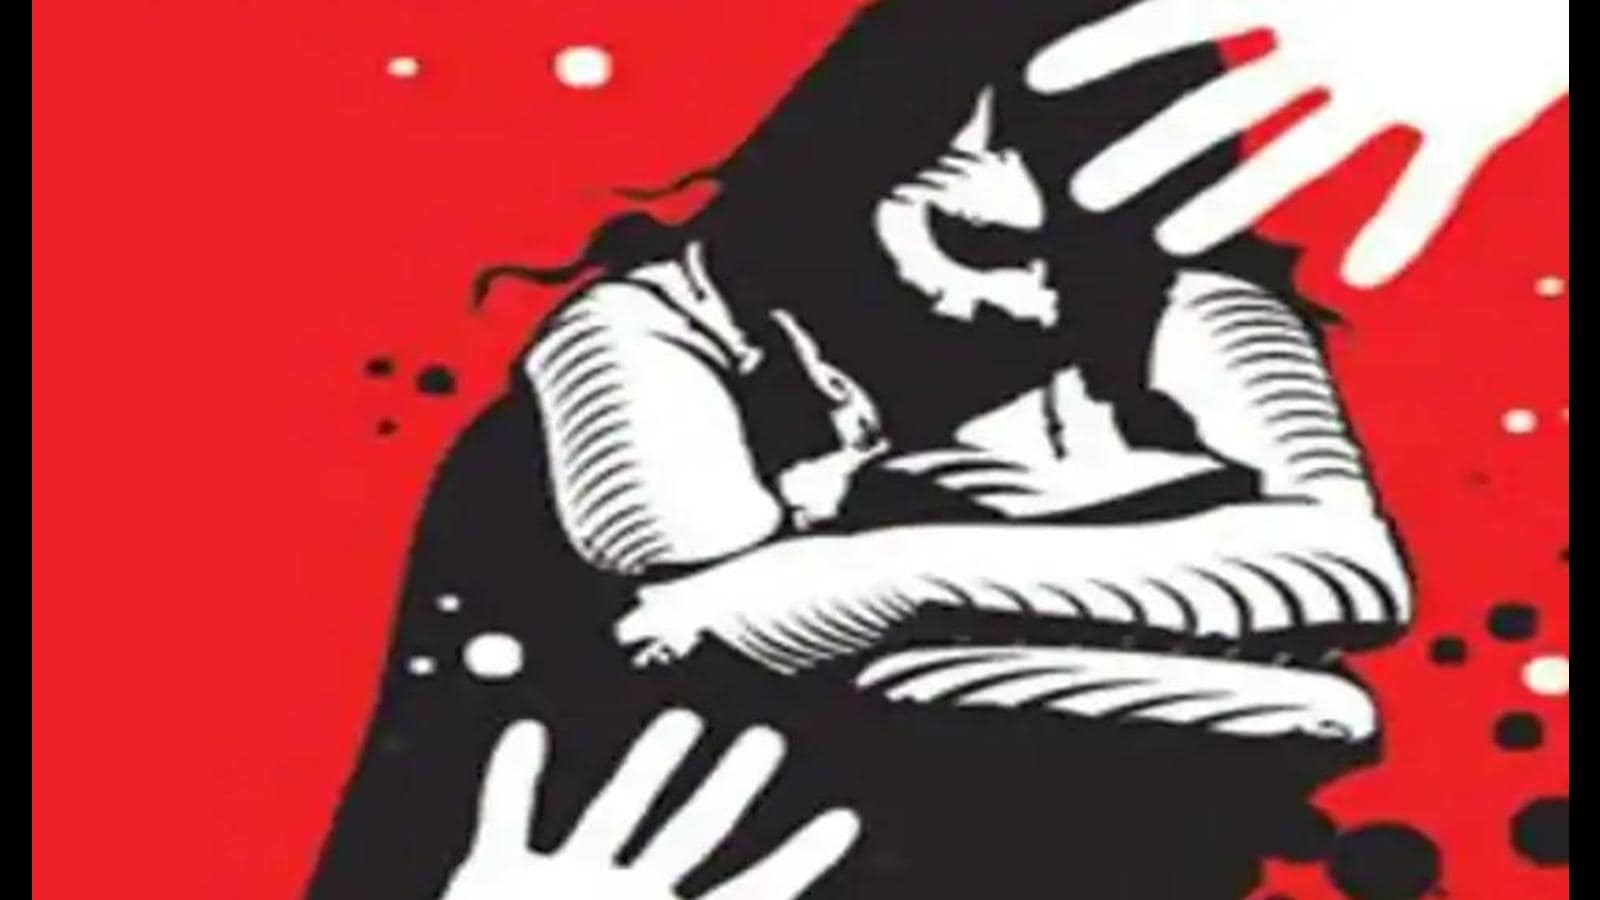 17-yr-old girl alleges sexual assault by father, SP and BSP leaders in Lalitpur